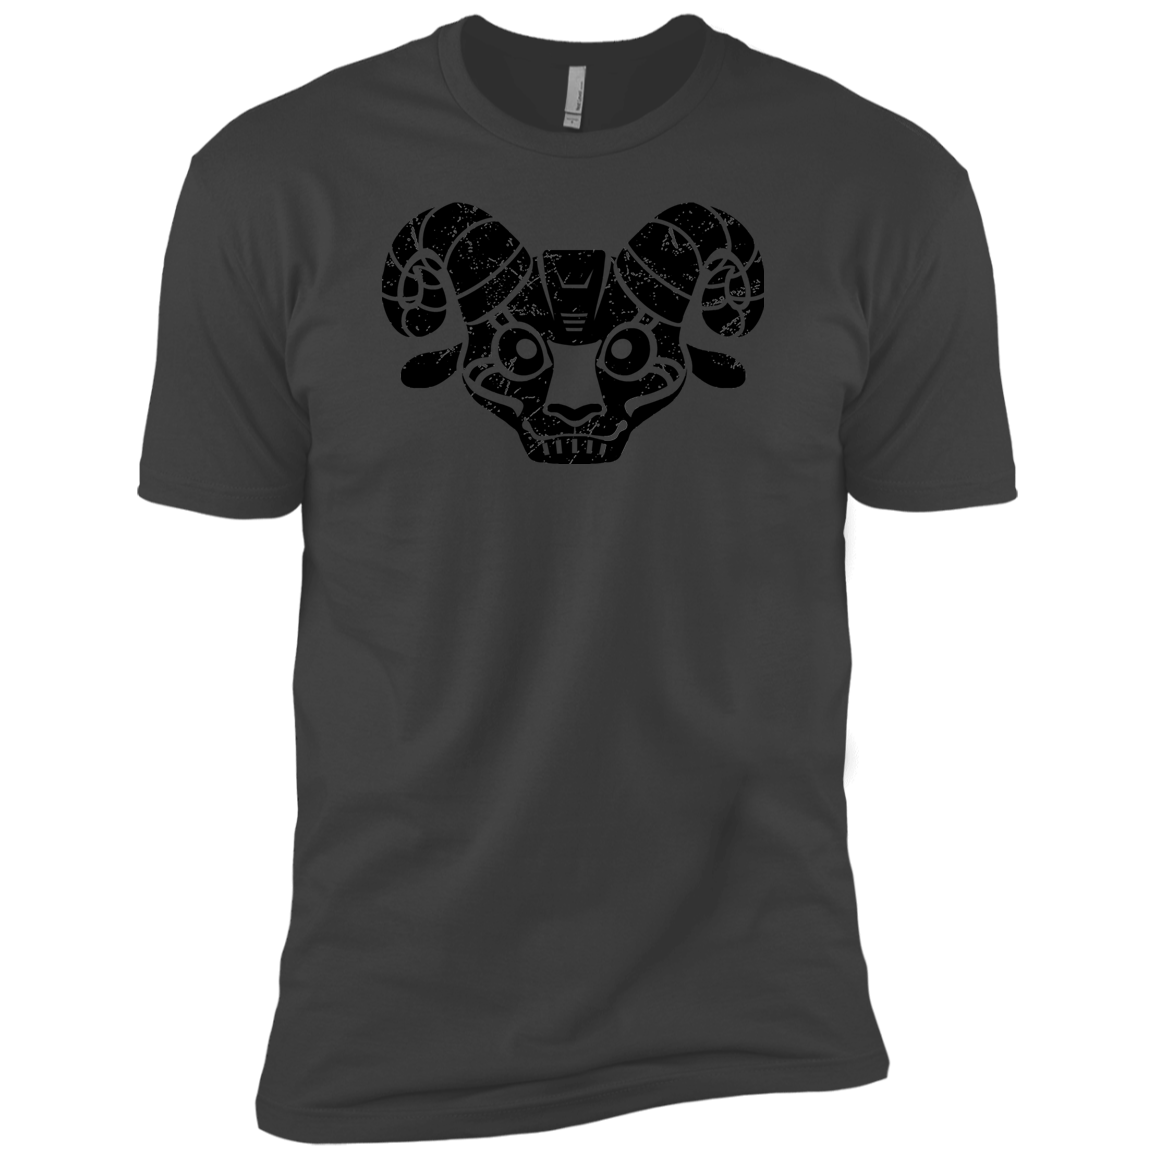 Black Distressed Emblem (Goat/BILLE) - Dark Corps